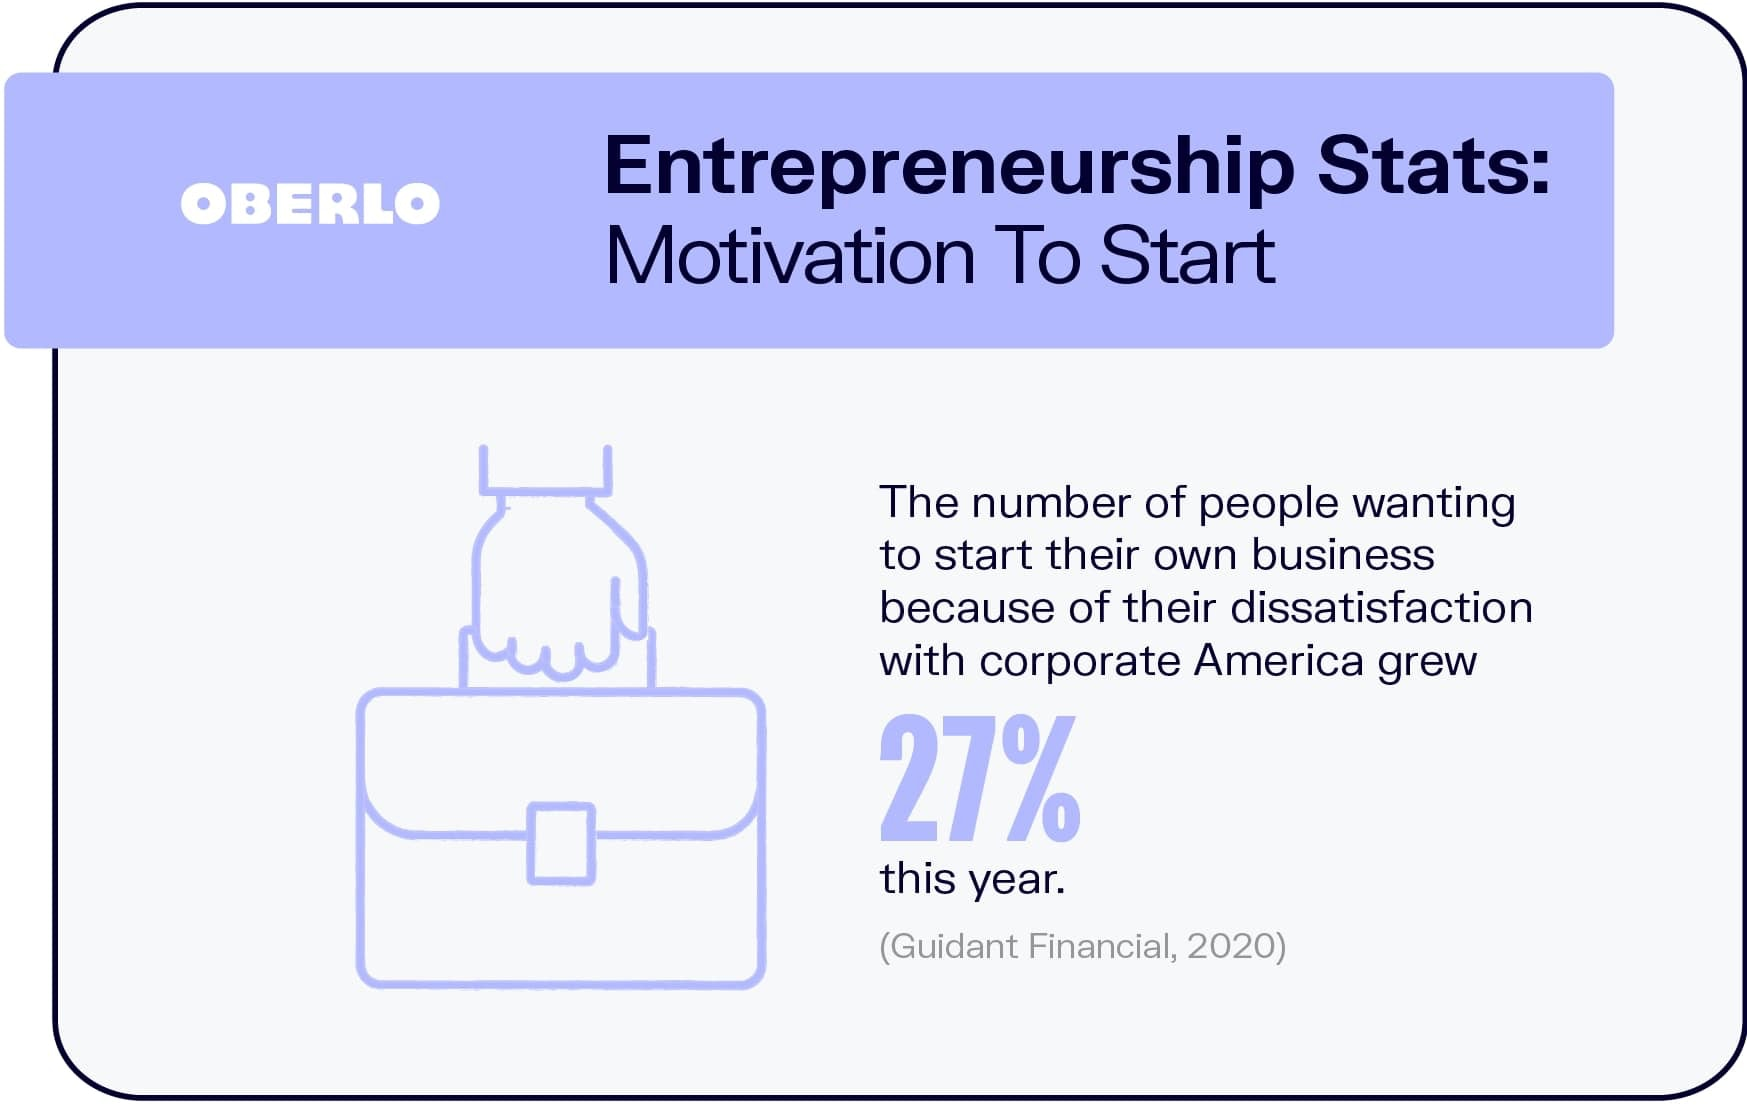 Entrepreneurship Stats: Motivation To Start